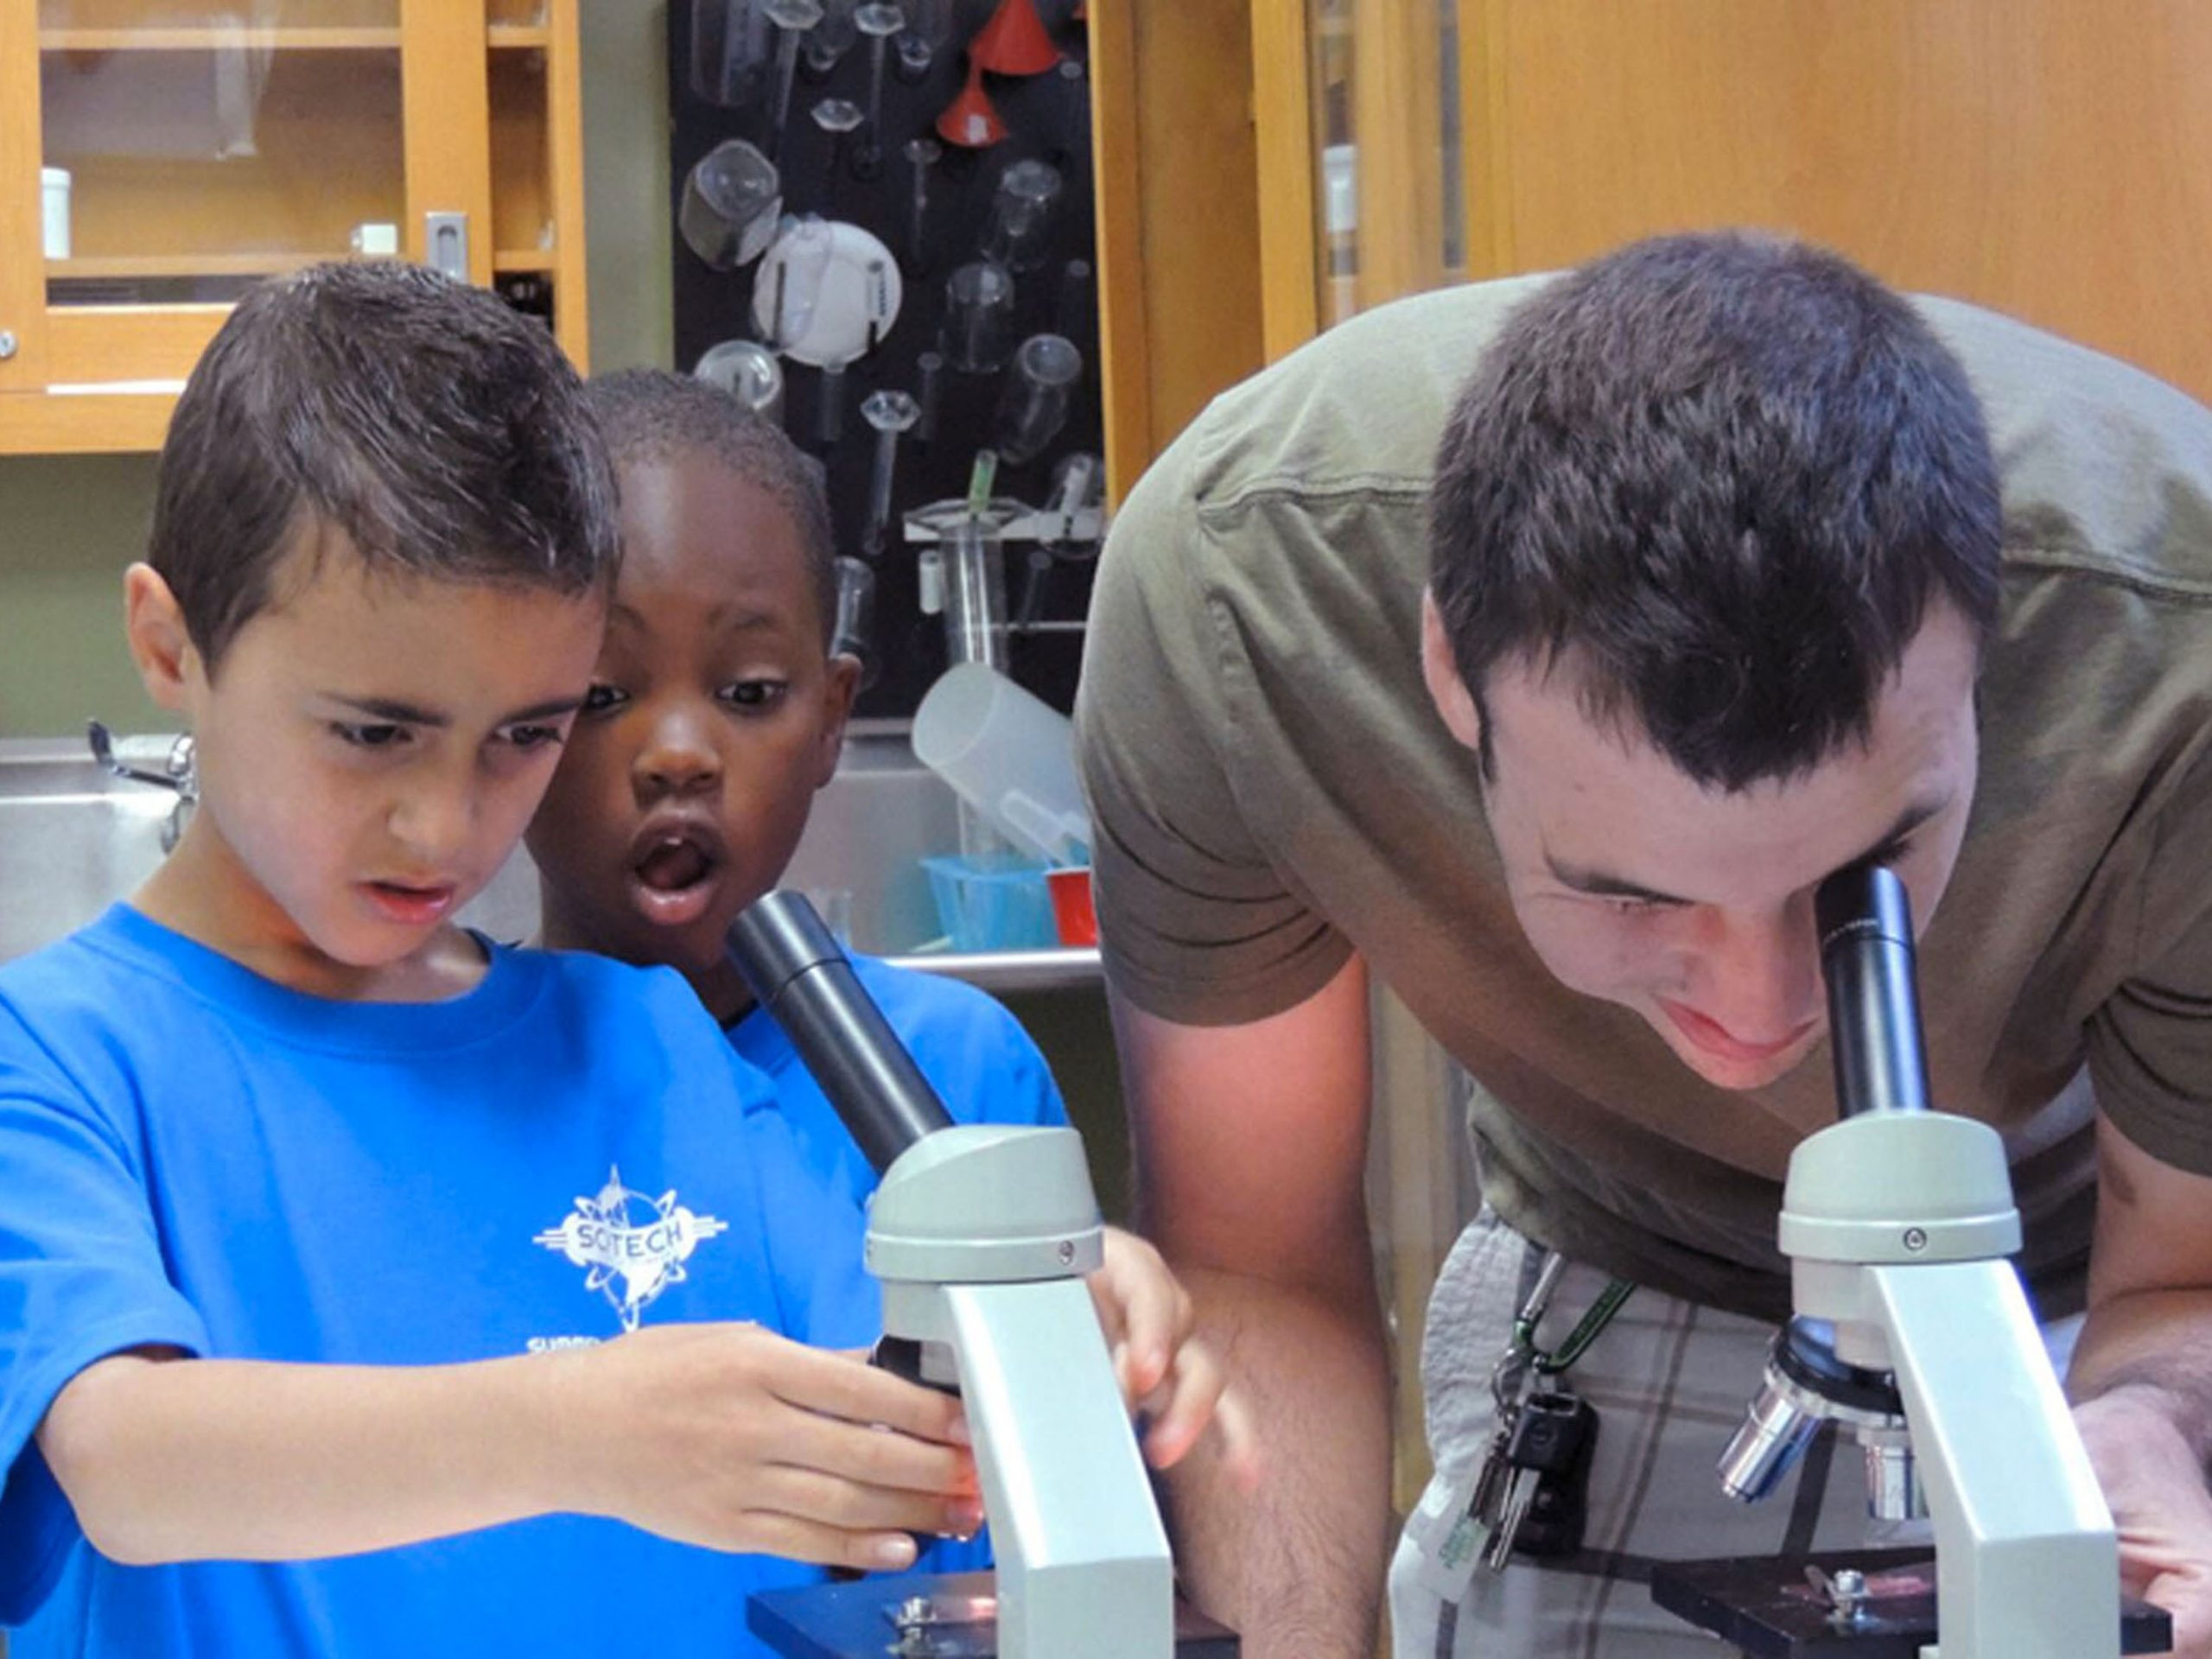 A volunteer helps two visitors use microscopes during science camp. Photo: SciTech Museum